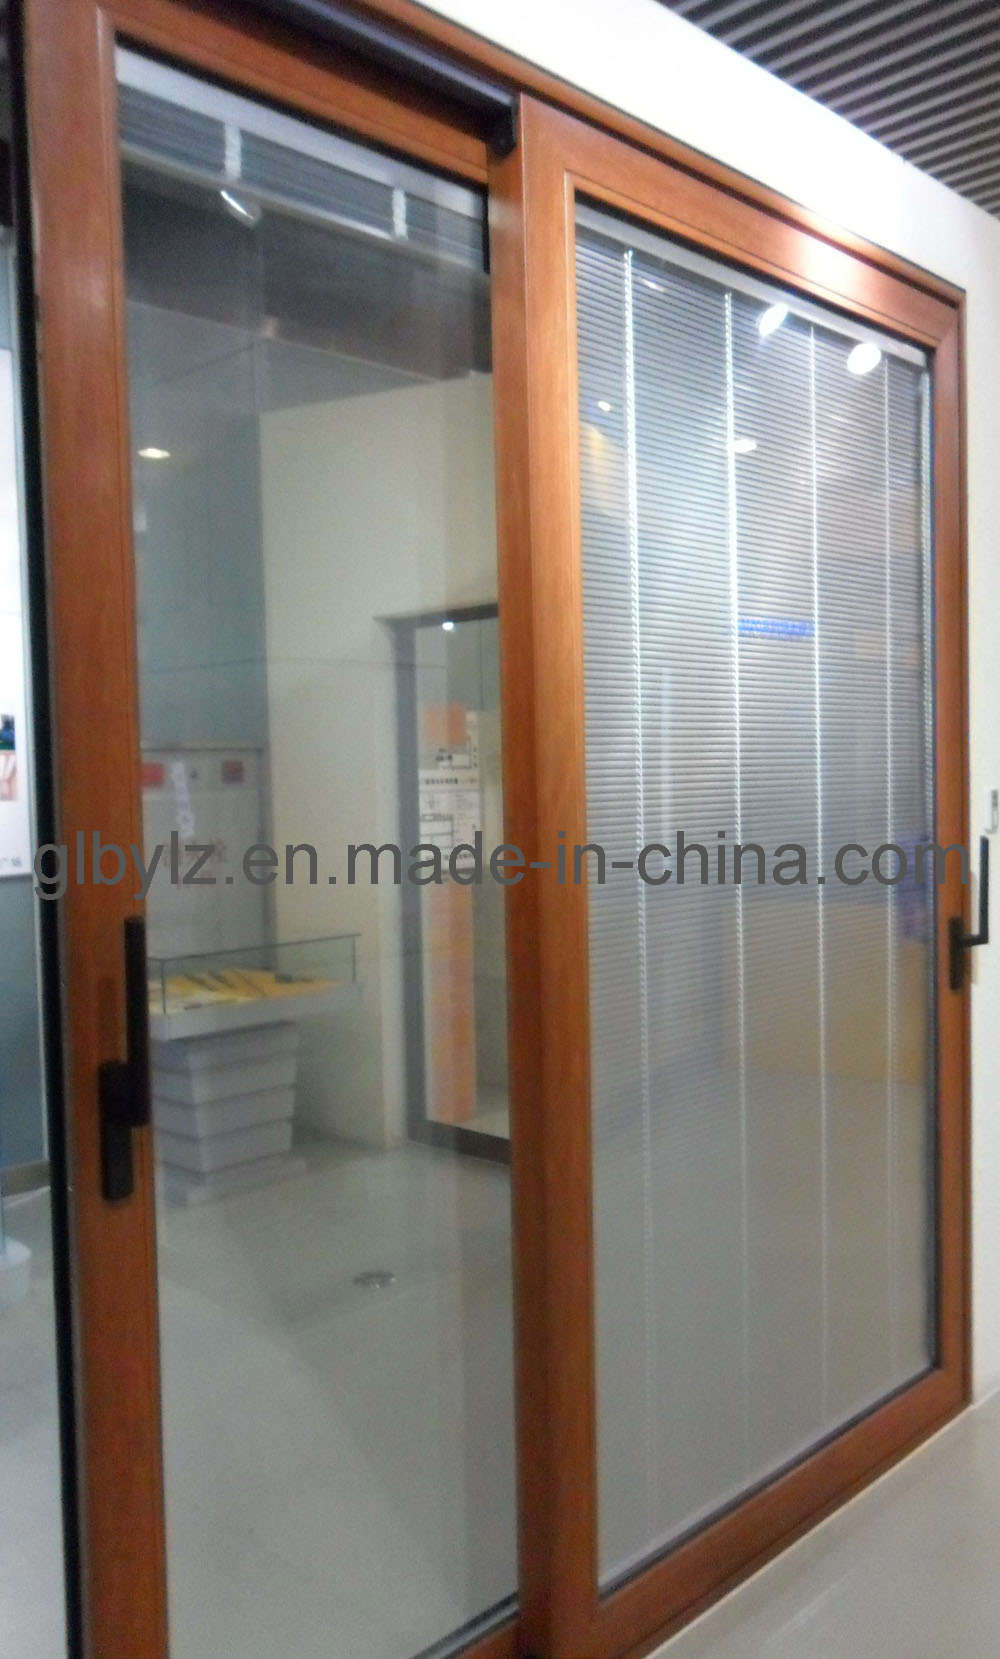 China aluminum wood sliding door lm150 china aluminum for Wooden sliding doors